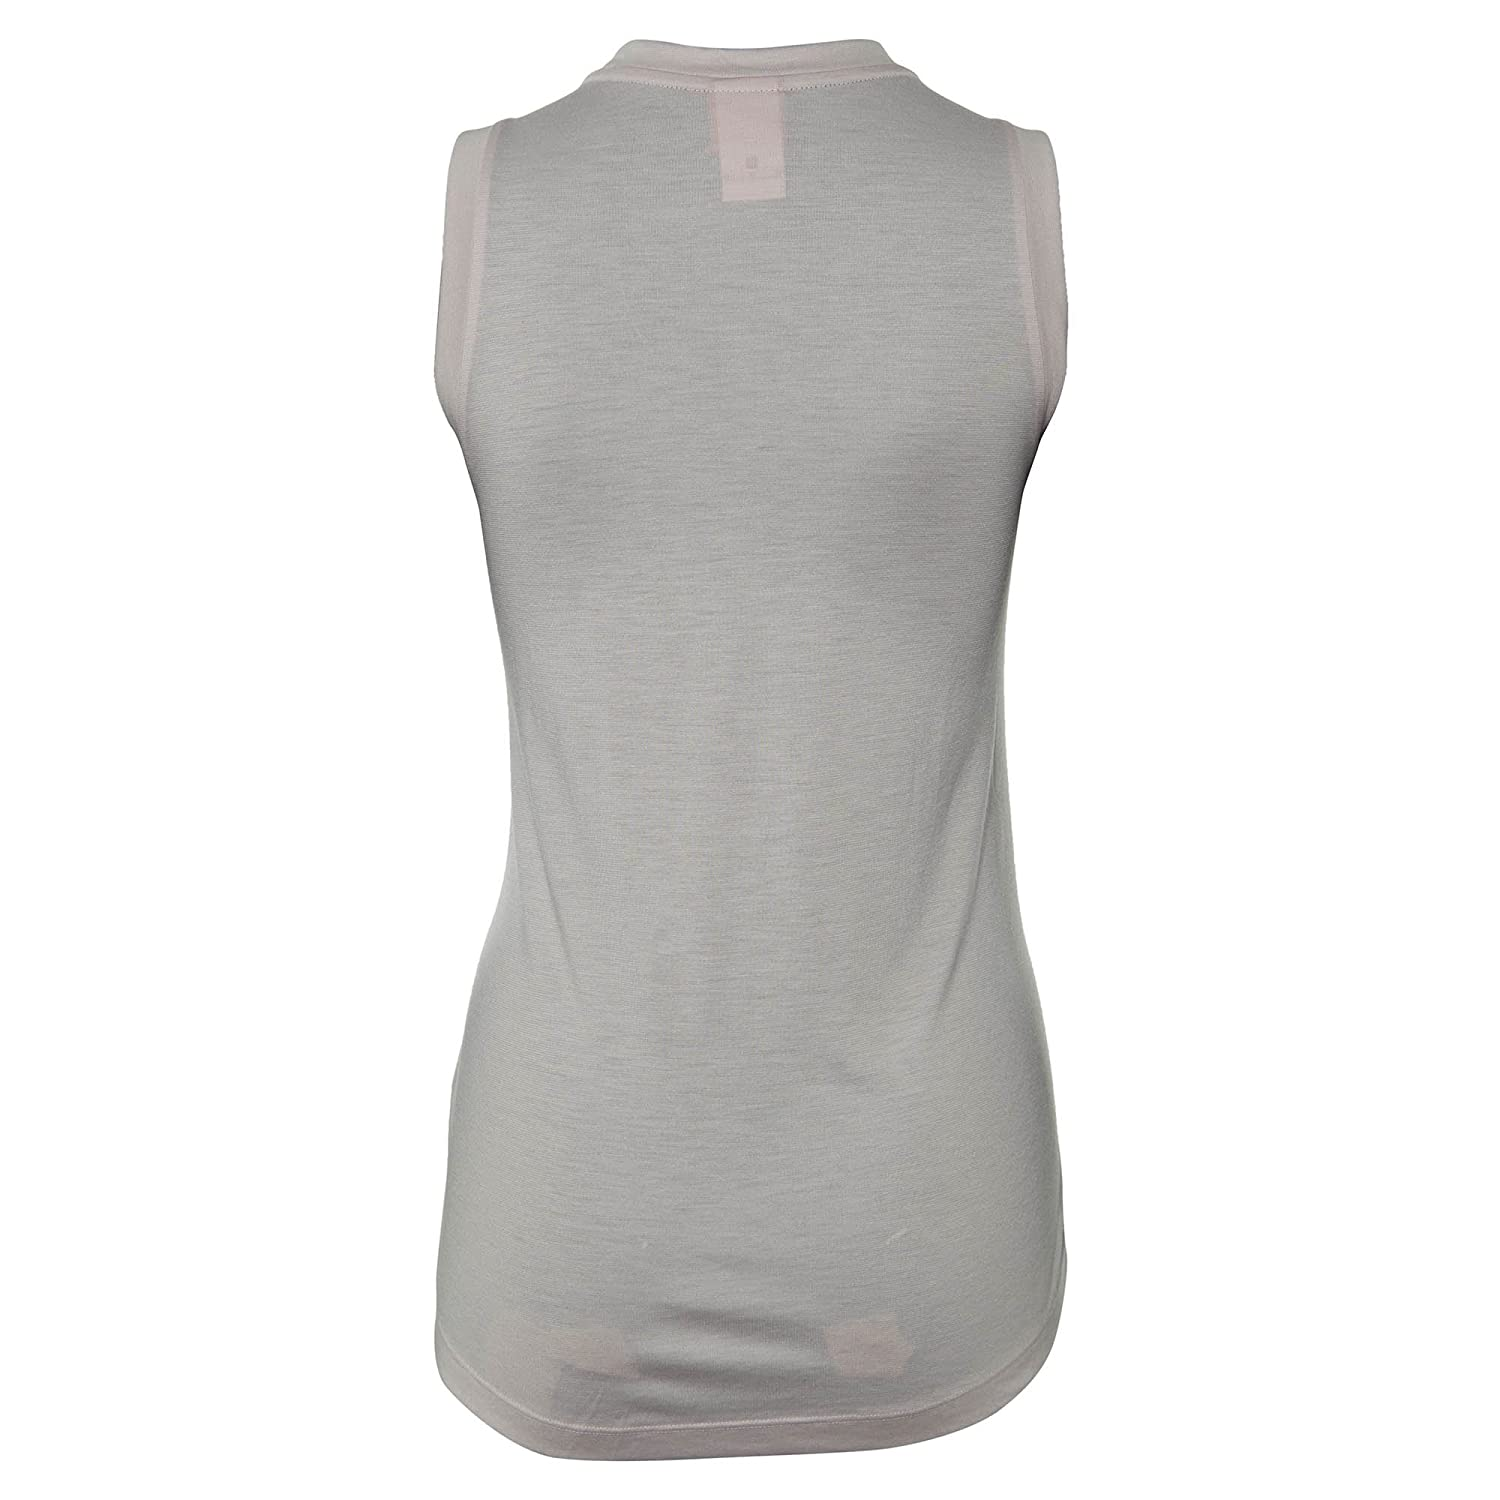 a1a3c6f495dc5f Nike Tank Top - Sportswear Essential Pink White Size  XS (X-Small)   Amazon.co.uk  Clothing